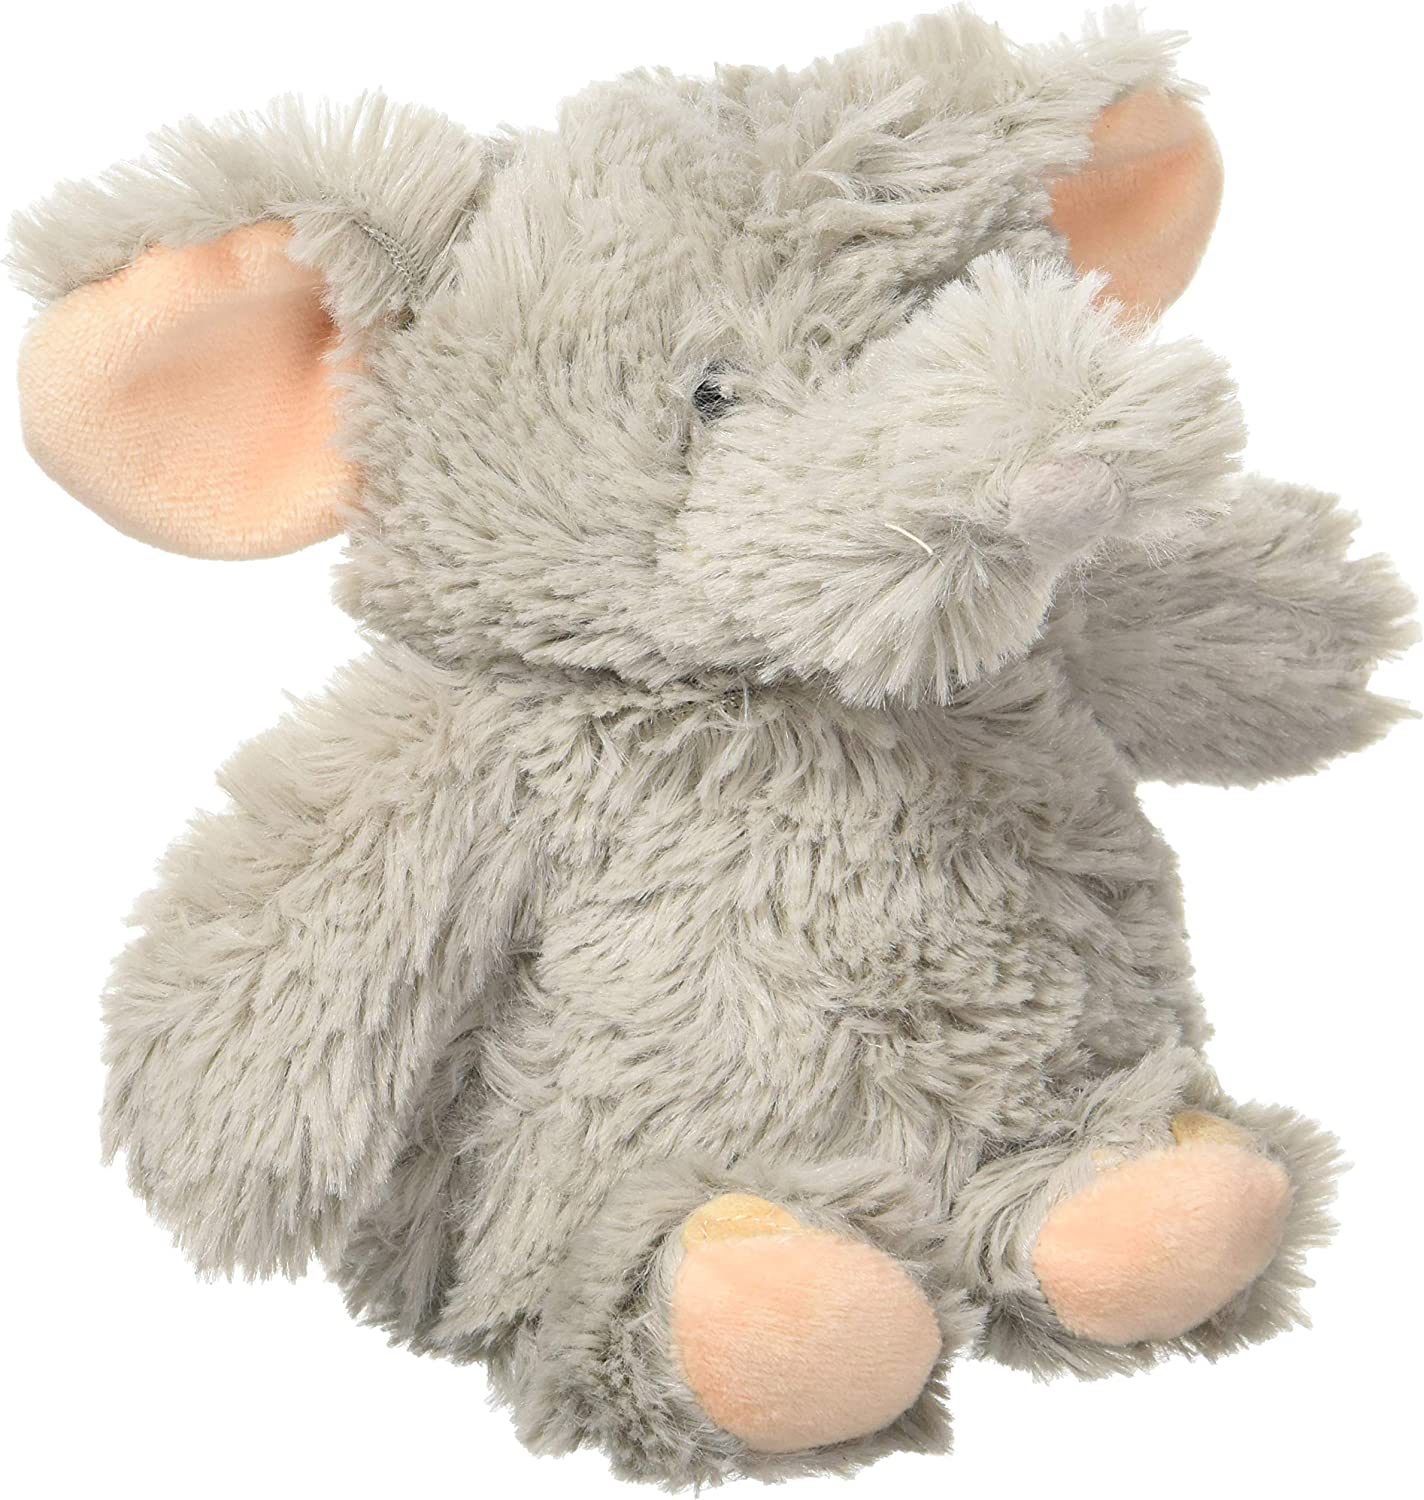 Intelex Warmies Microwavable French Lavender Scented Plush Jr Elephant